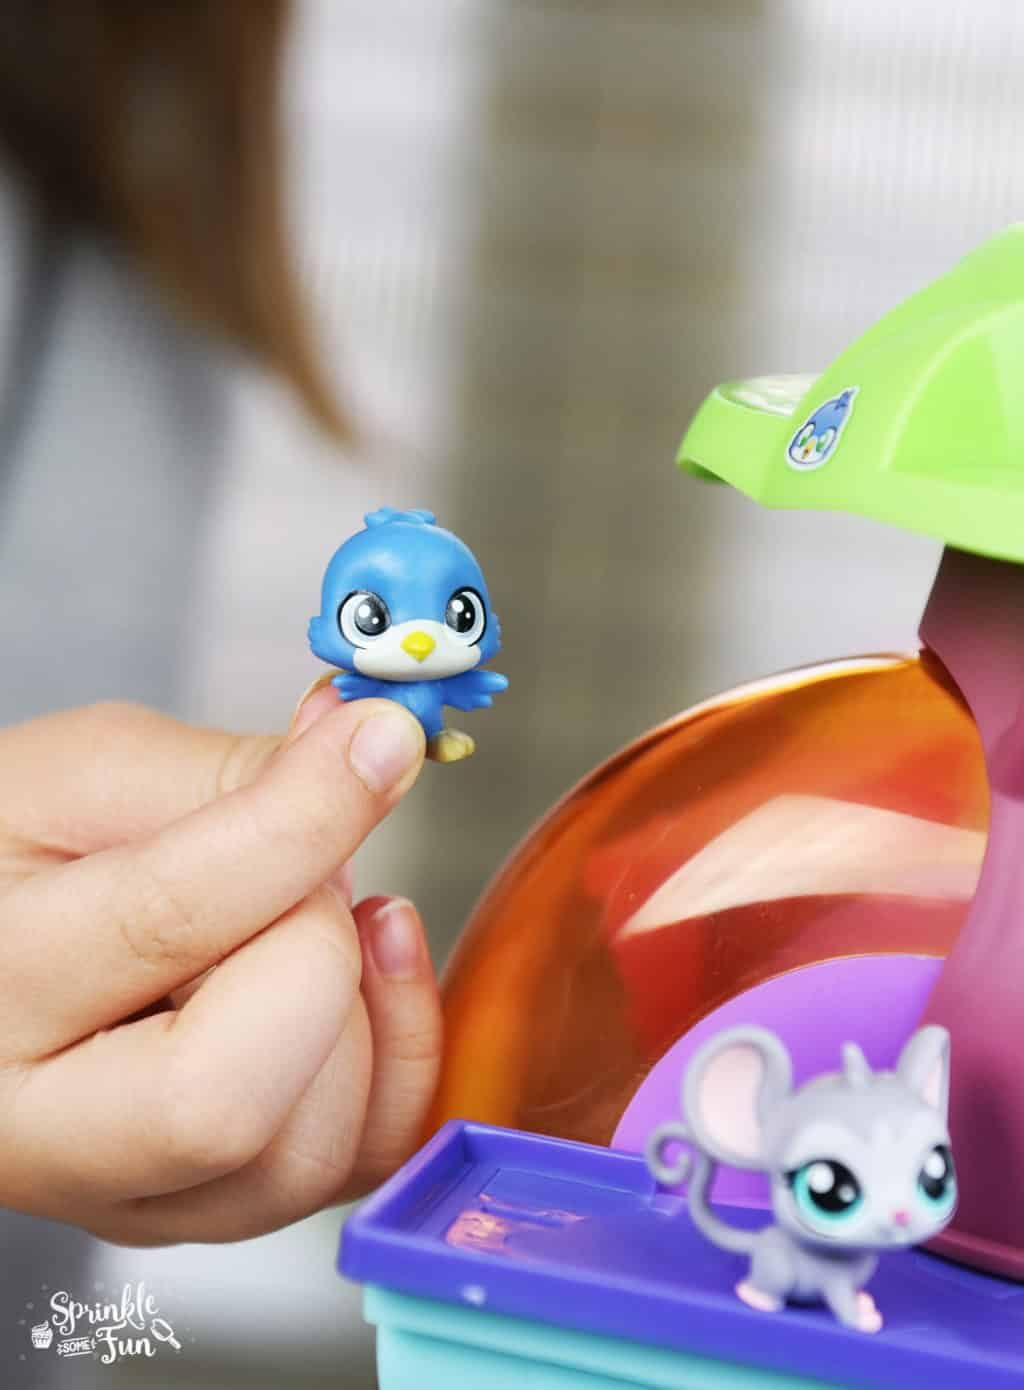 Homeschool Fun With Littlest Pet Shop Sprinkle Some Fun